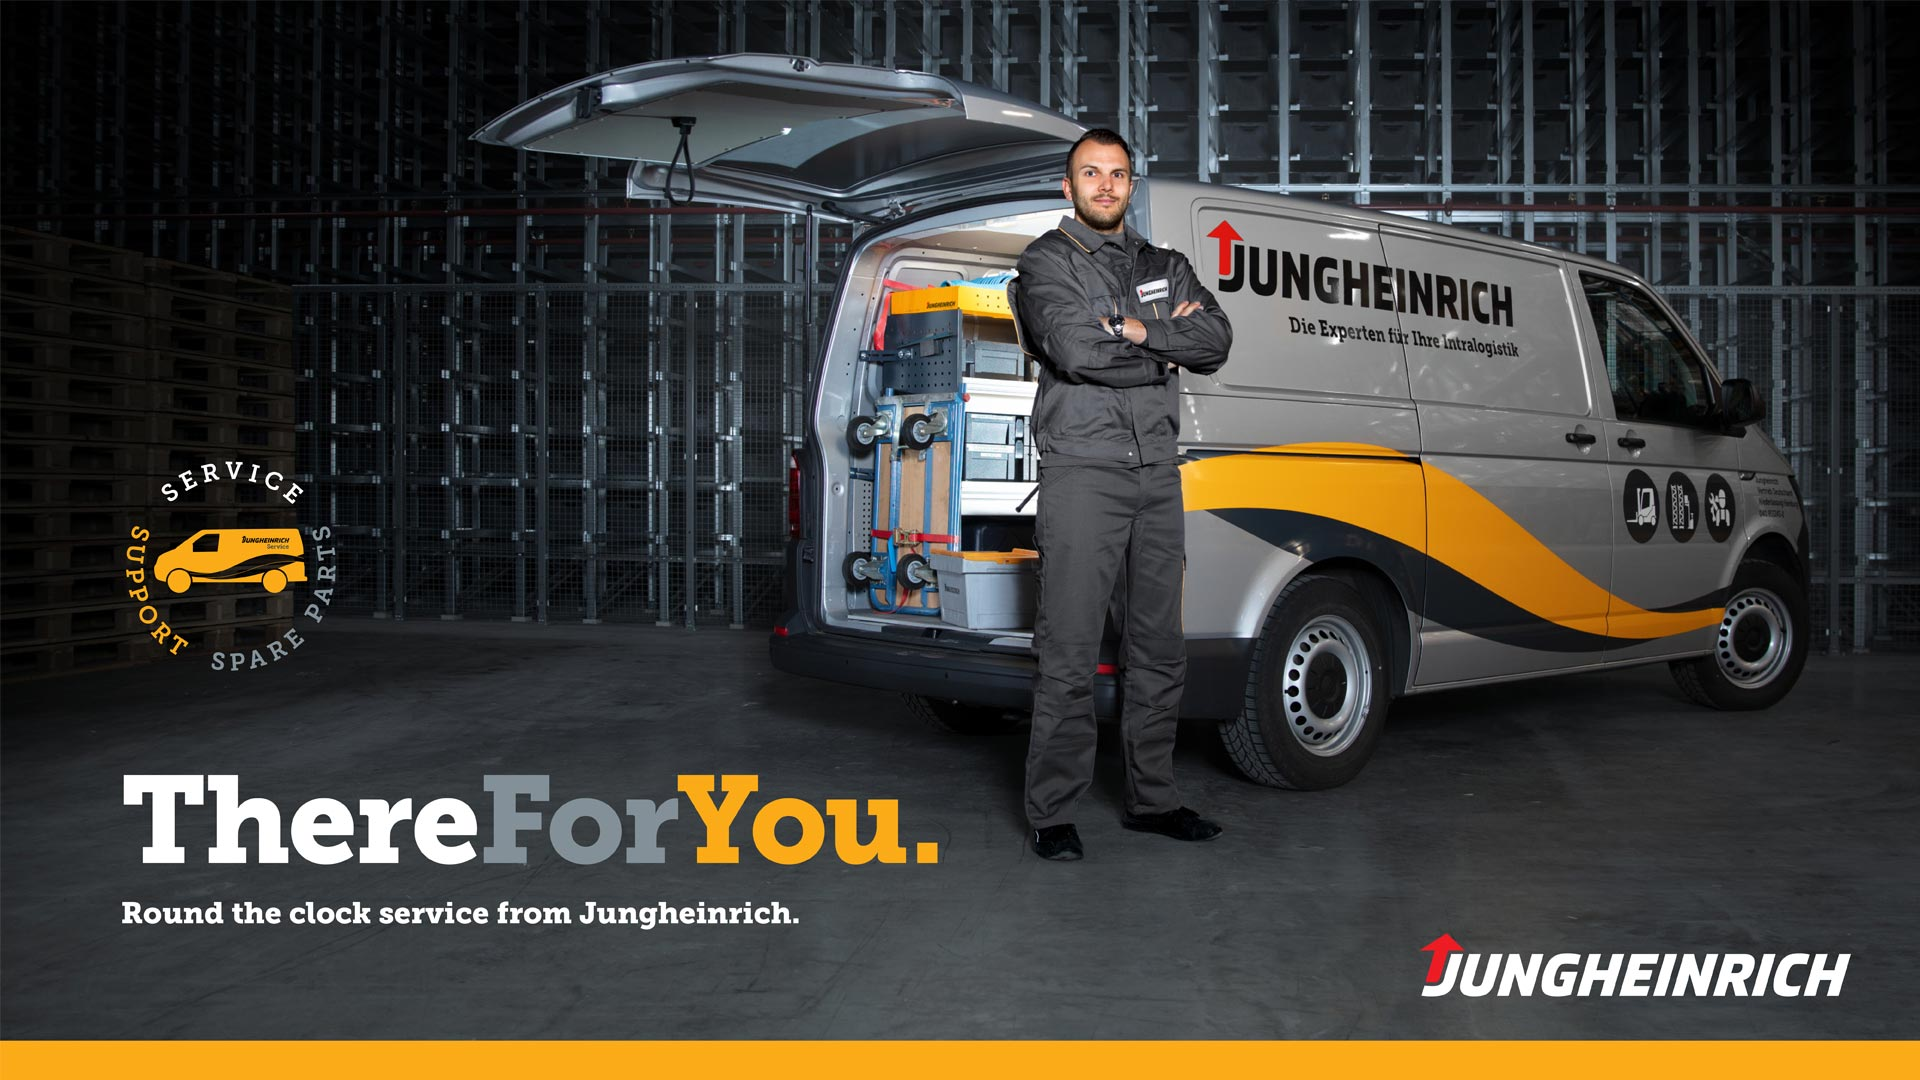 Jungheinrich campaign - There for you